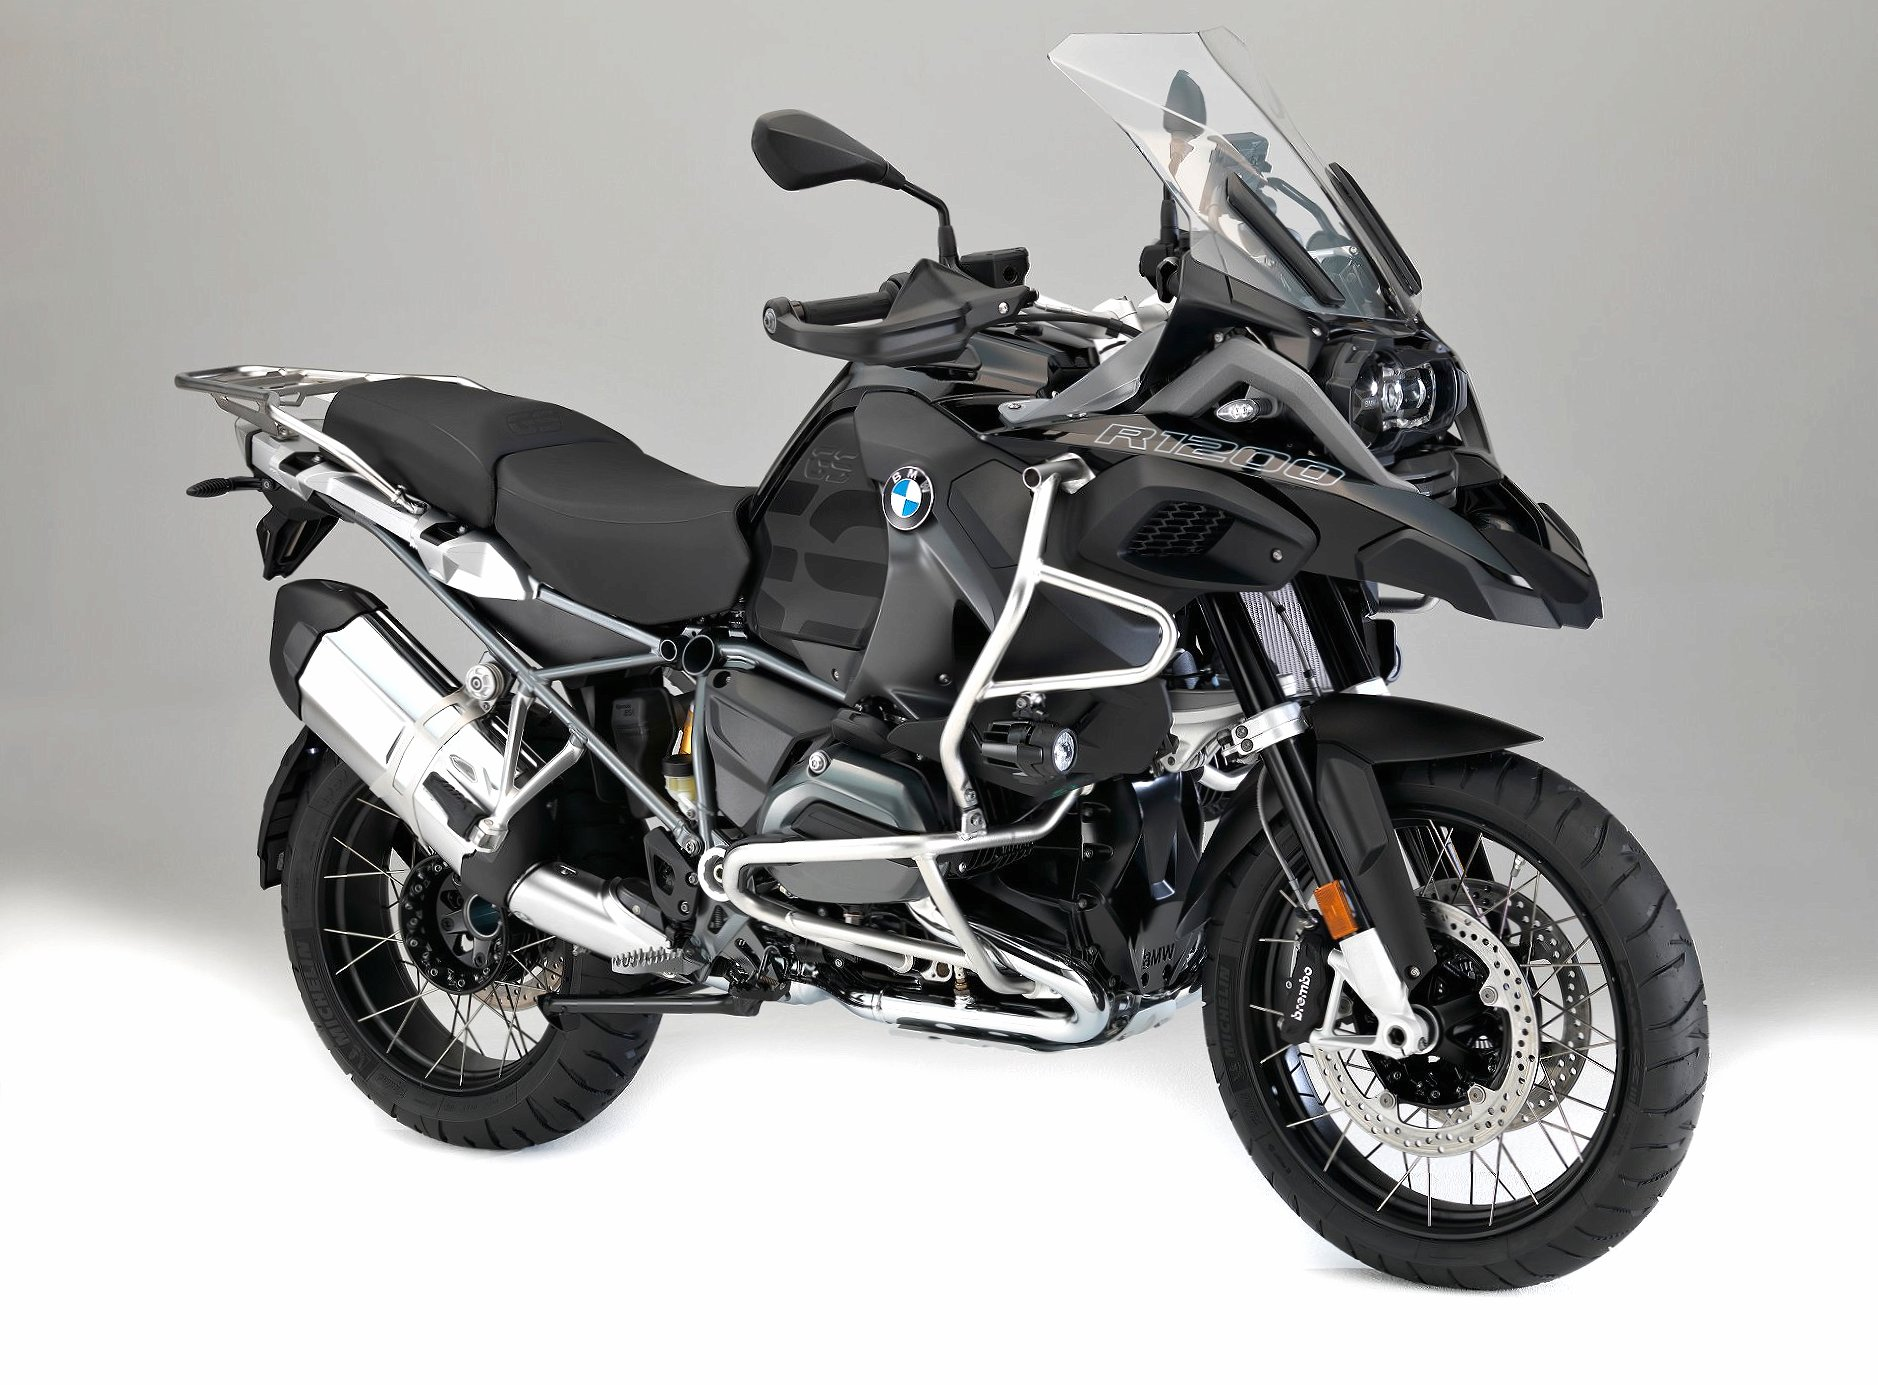 BMW R1200GS wallpapers HD quality